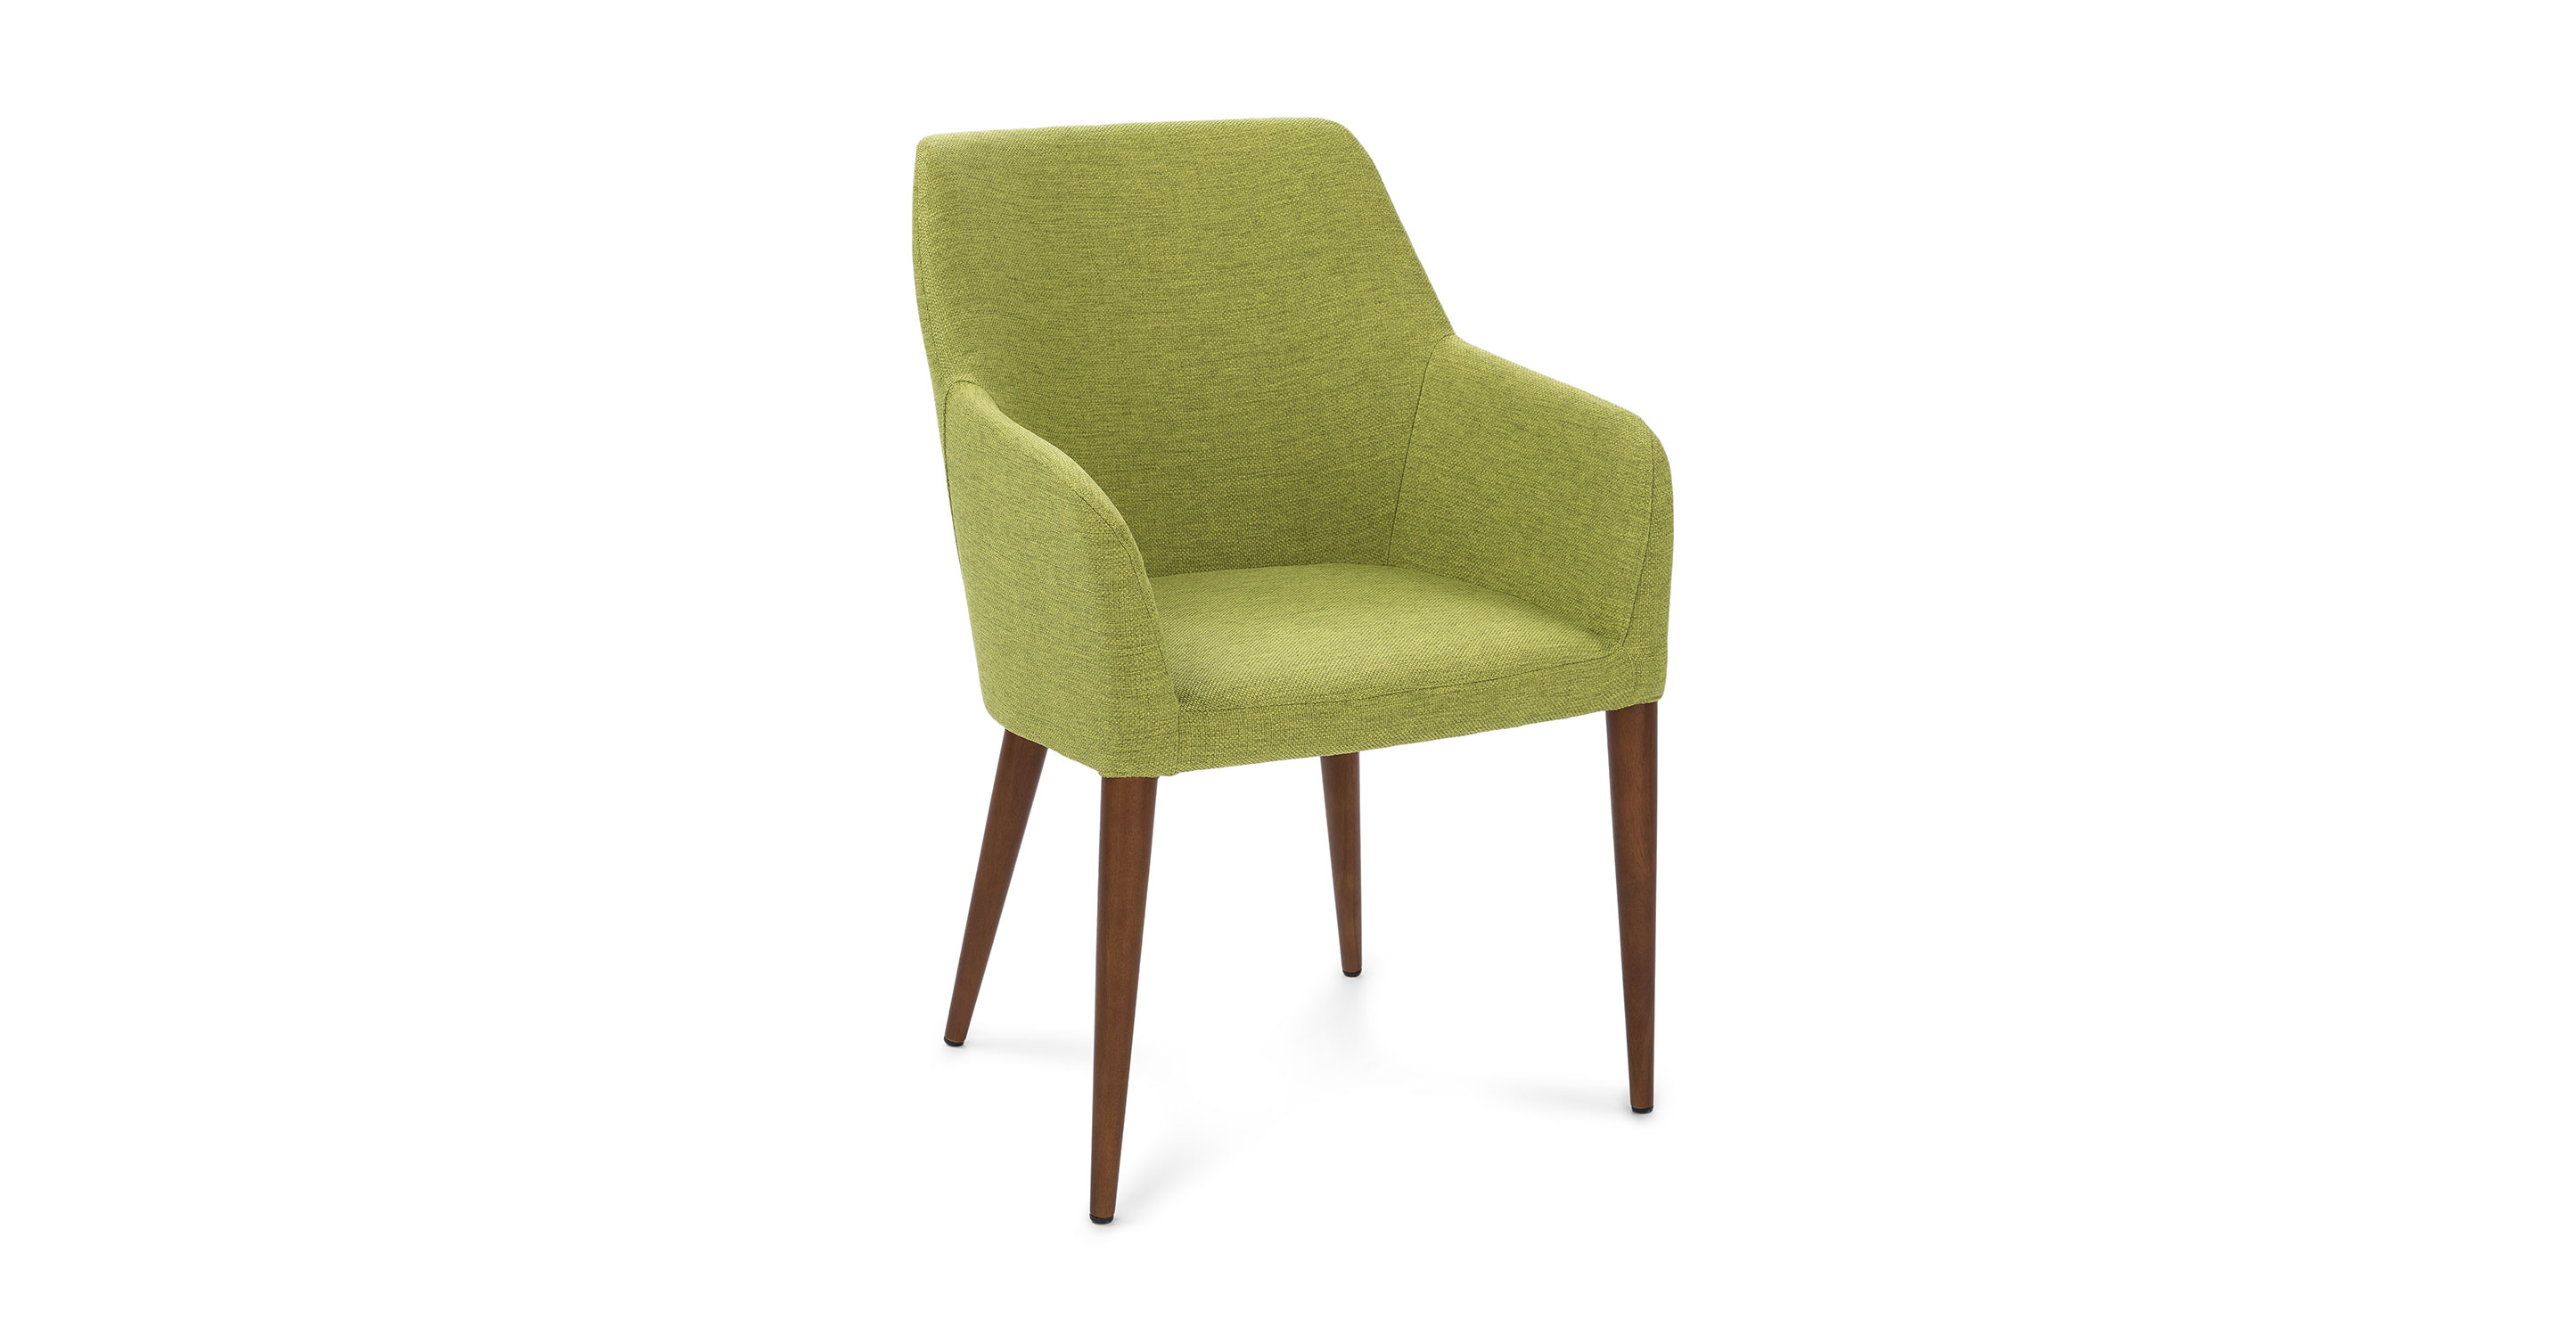 Lime Green Accent Chair Feast Lime Green Dining Chair Chairs Article Modern